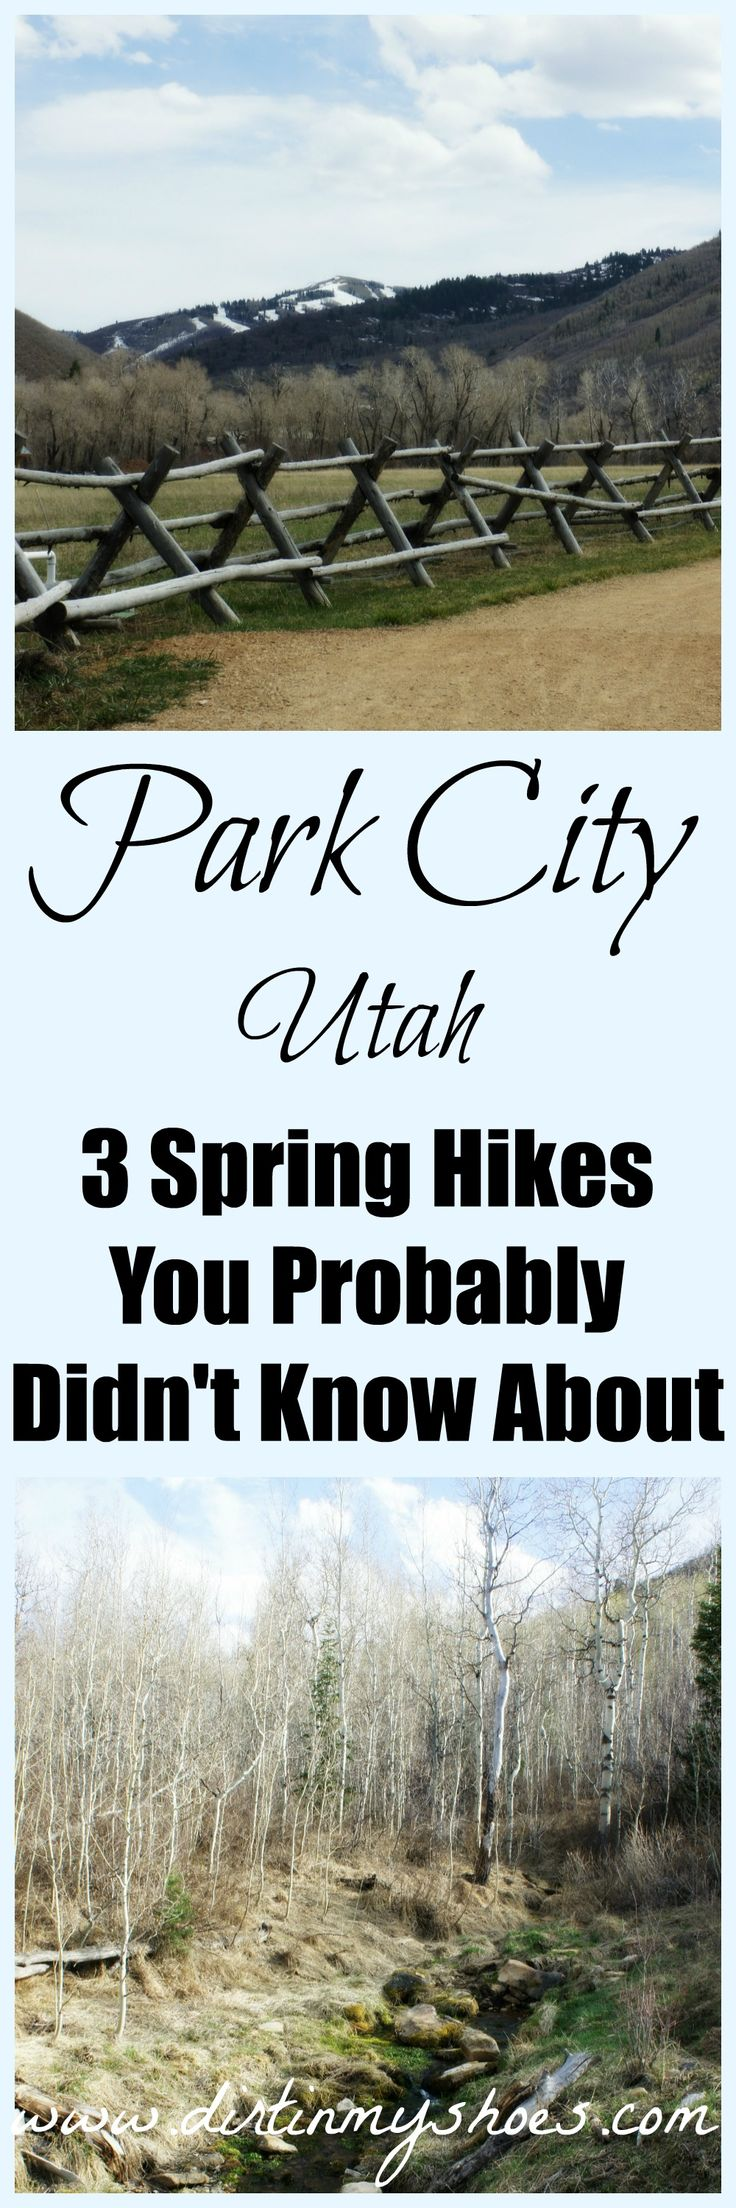 3 Spring Hikes In Park City   Dirt In My Shoes.  Hike like a local with these trails you probably didn't know about!